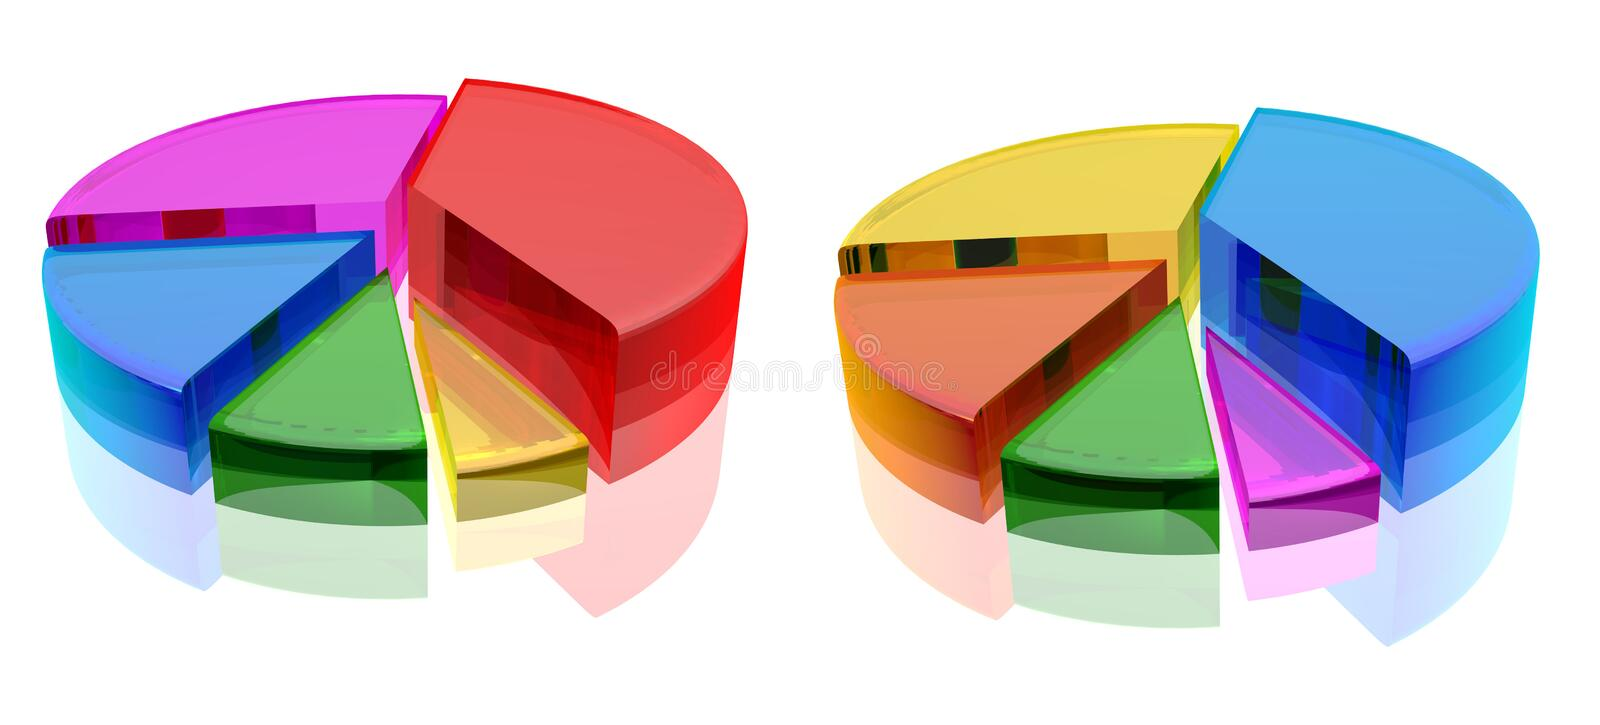 Chart. Illustration of 3d pie chart. 3D chart render royalty free illustration